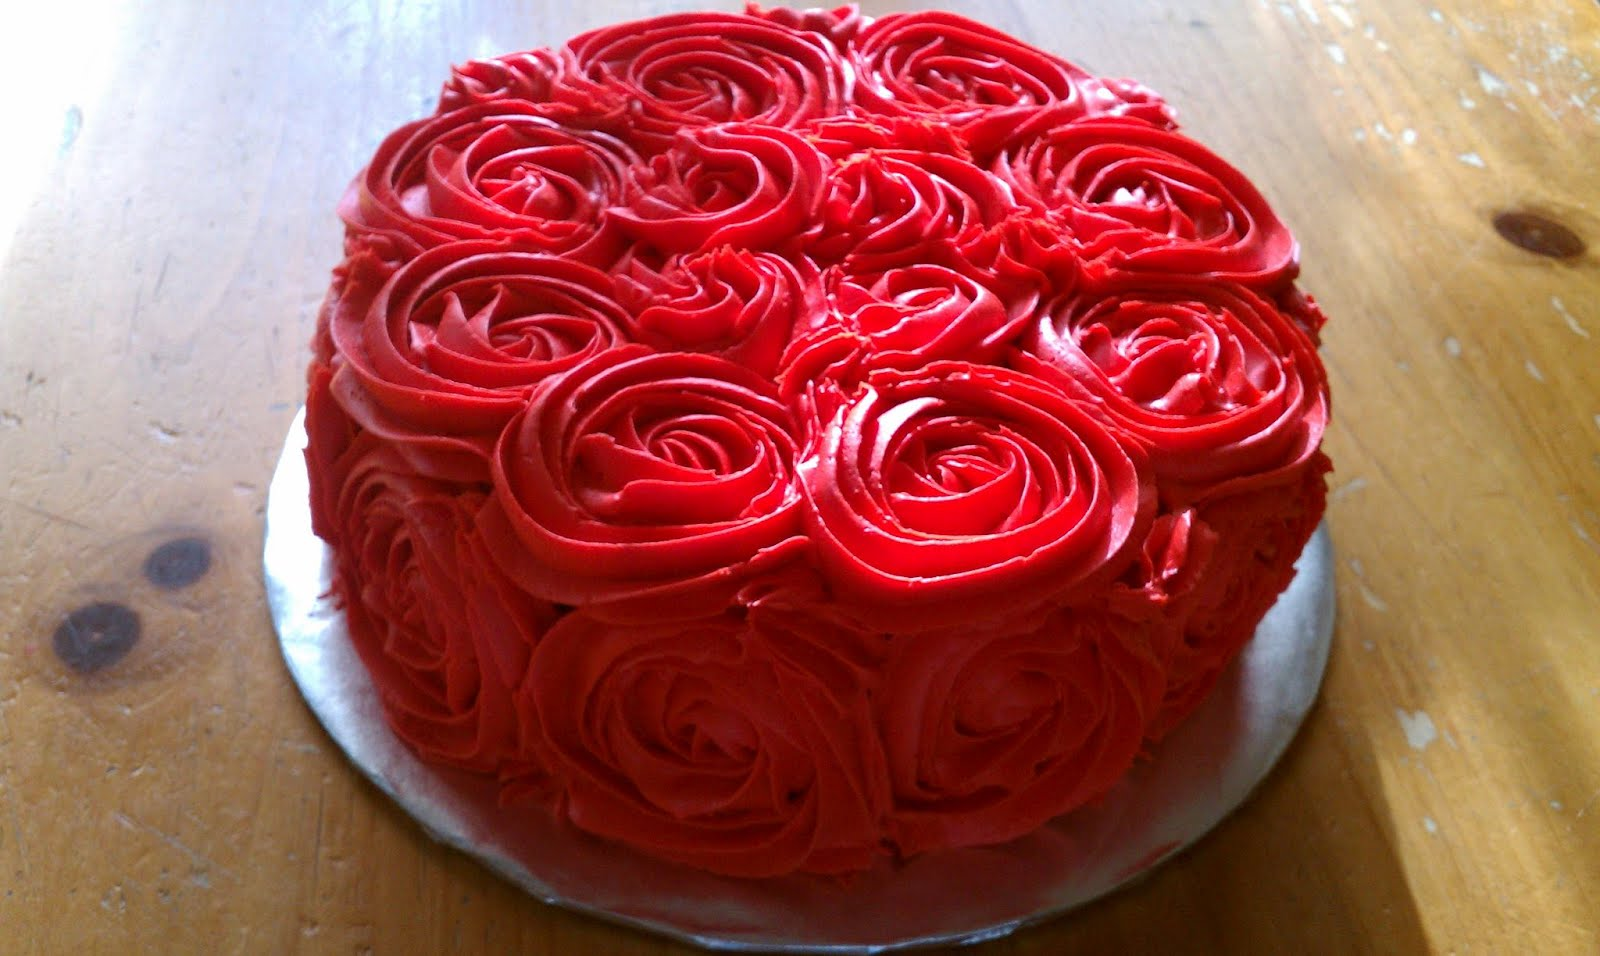 Rose Day Cake Images : Introducing....: Rose cakes and cupcake bouquets for ...